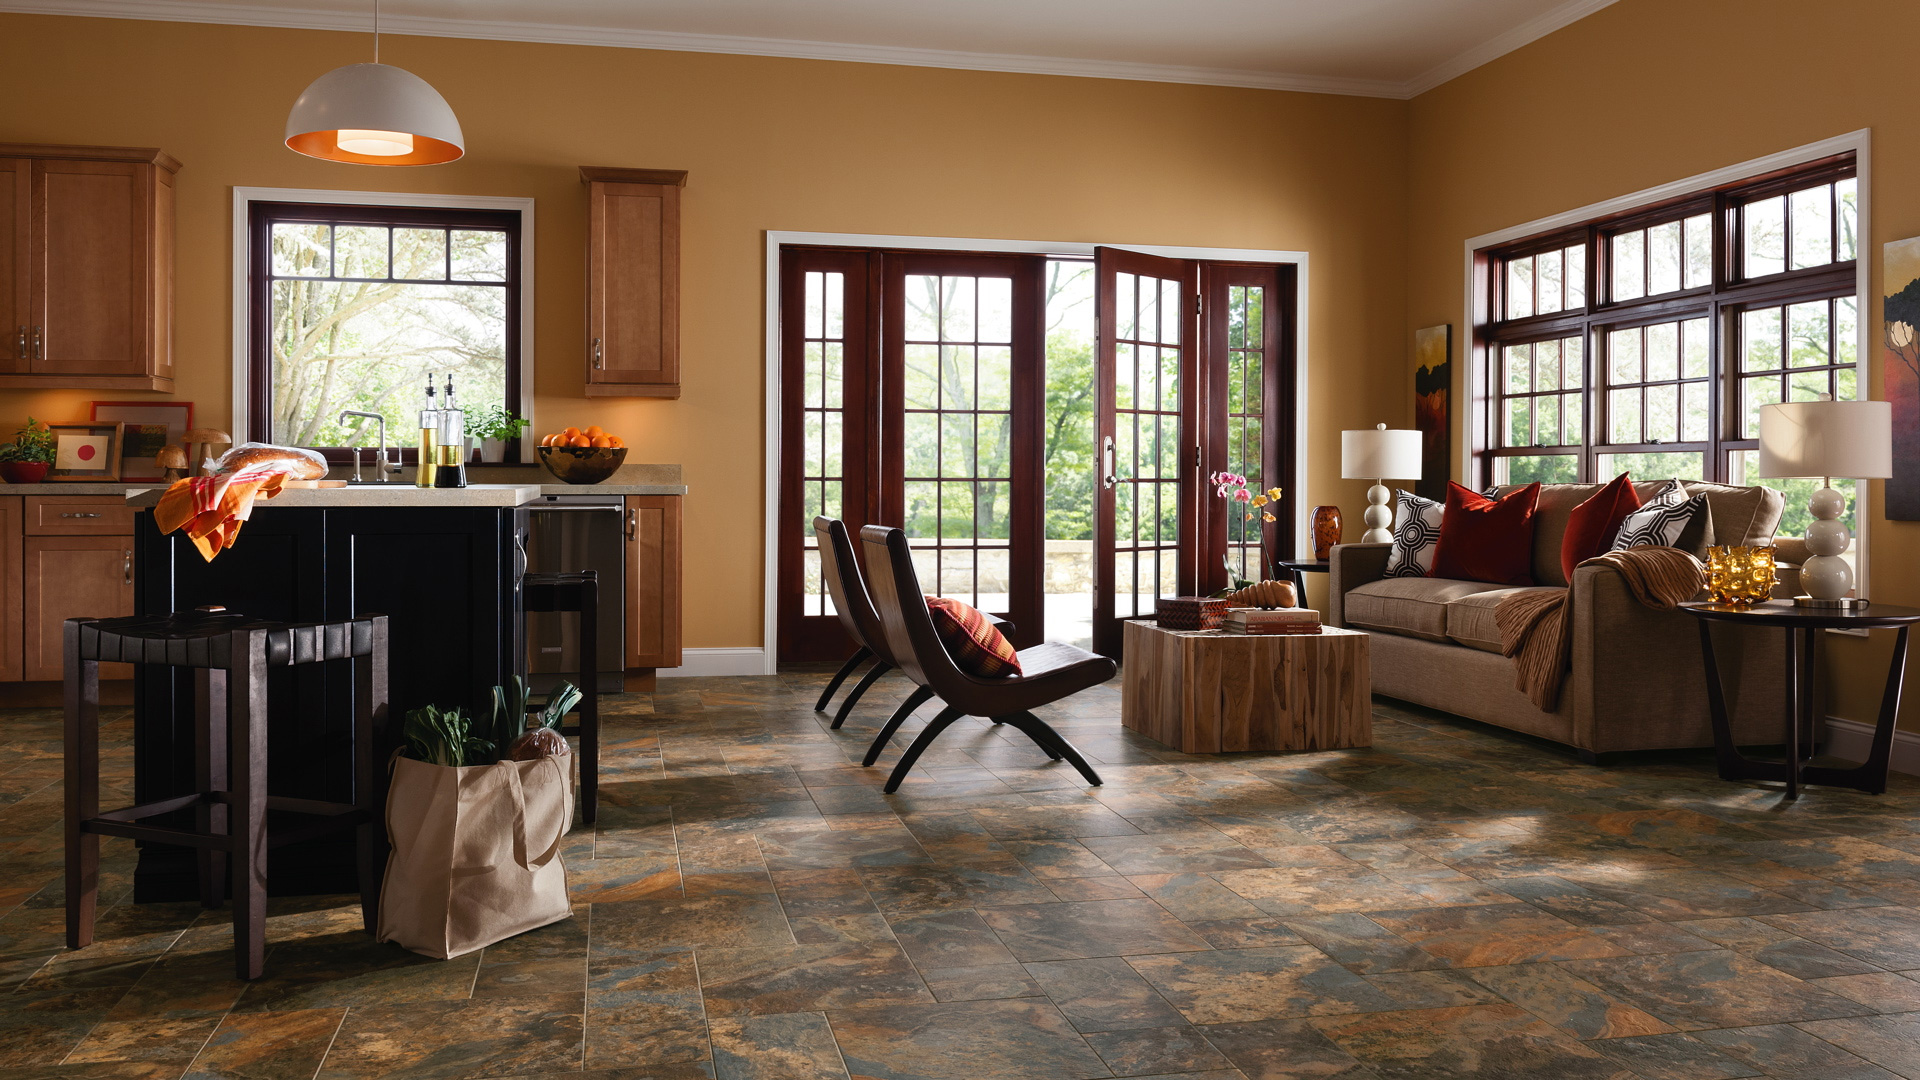 unique inspiration carpet to look ideas armstrong flooring like with high aspire creates that laminate end floors empire